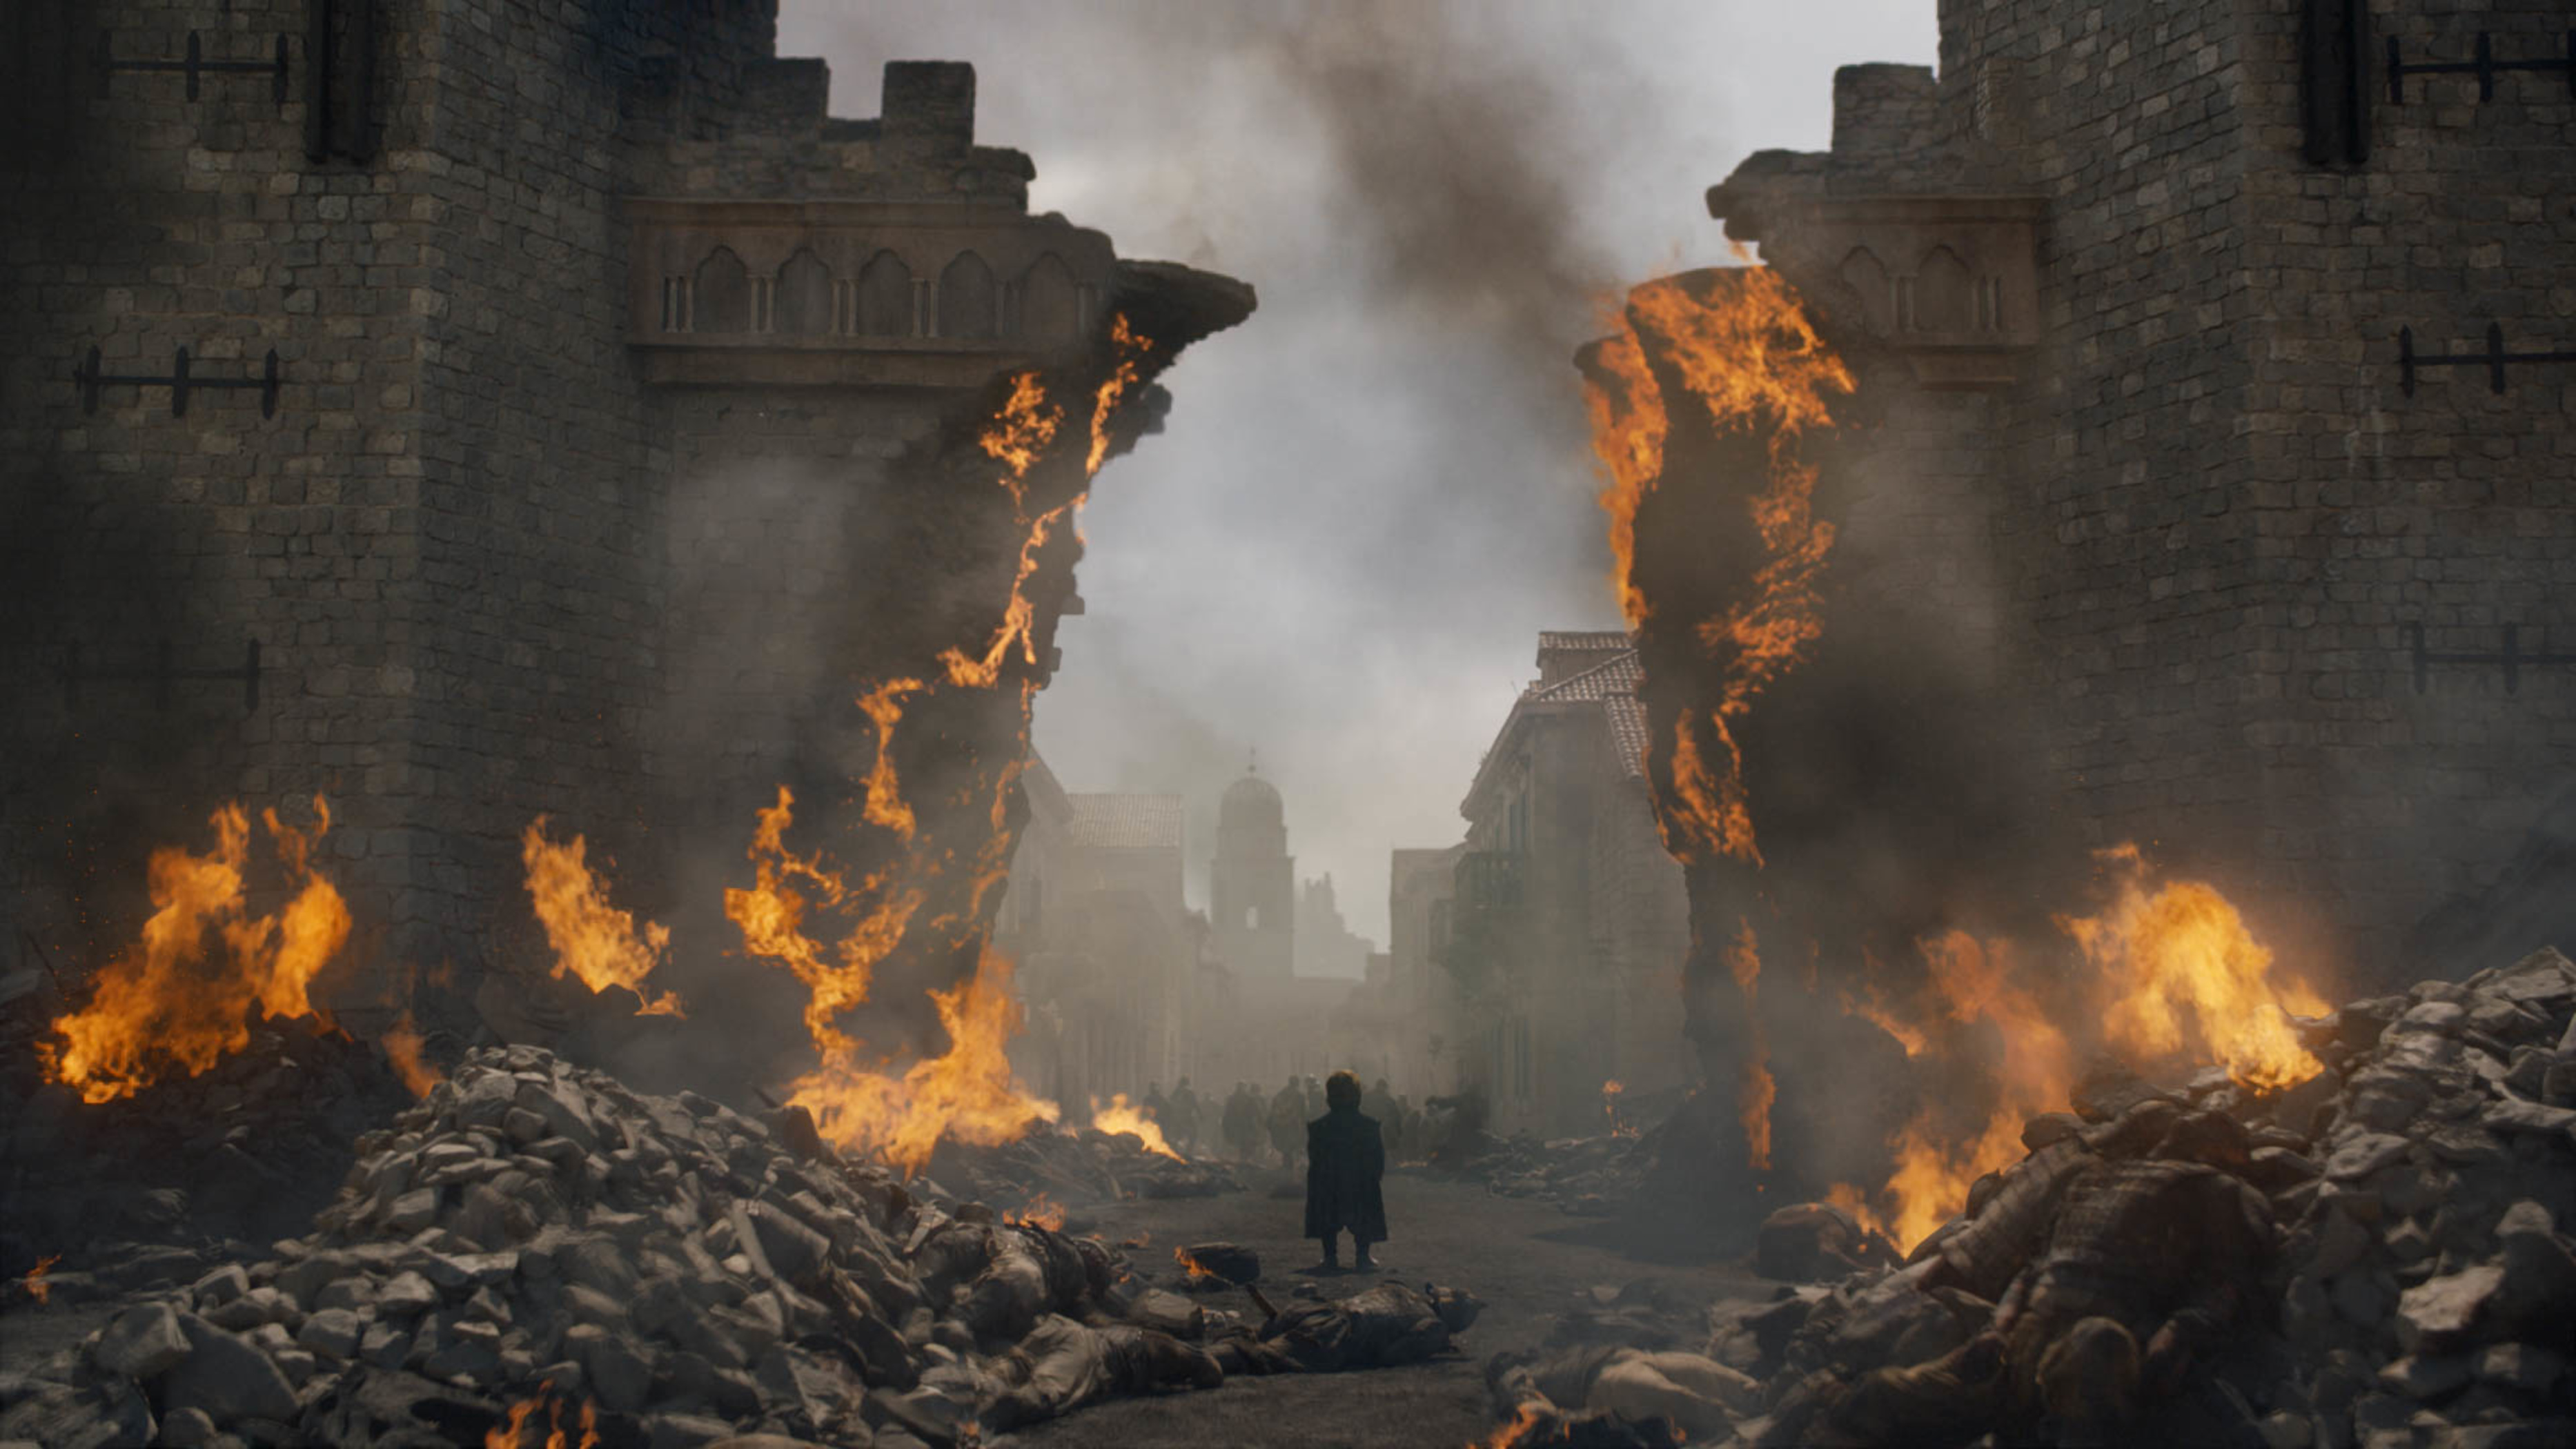 A petition to remake Game of Thrones' 8th season has 500,000